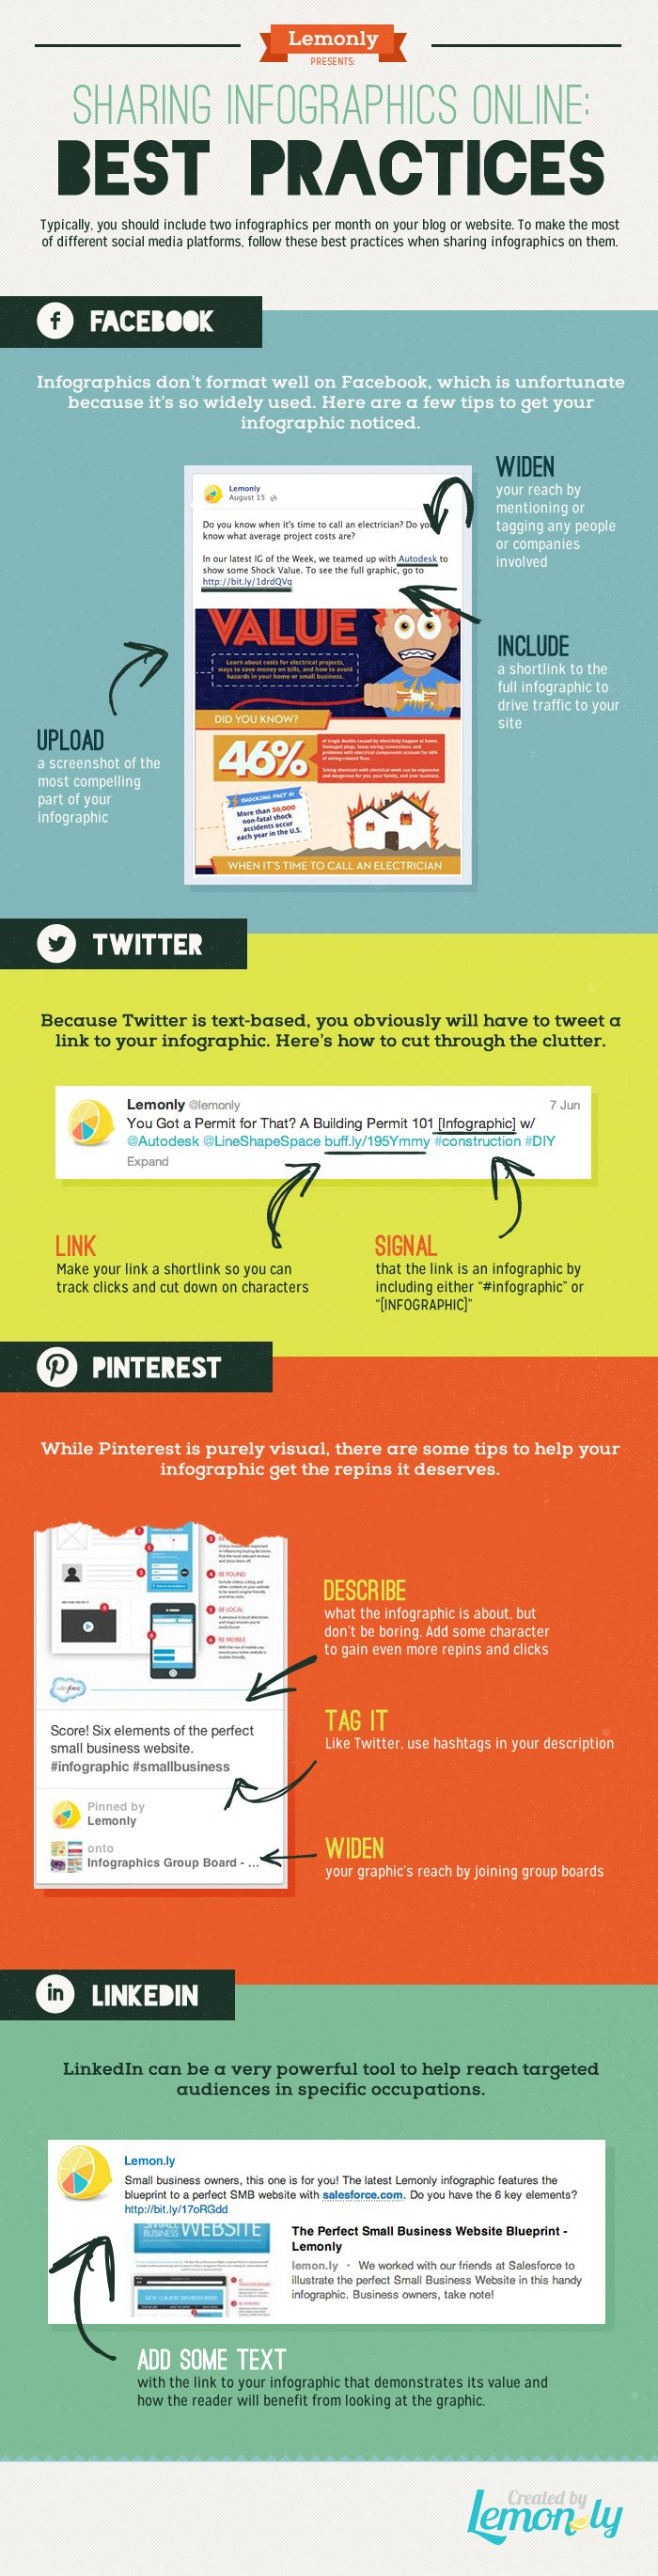 Best Practices For Sharing Infographics On Social Media   #Infographic #SocialMedia #Sharing